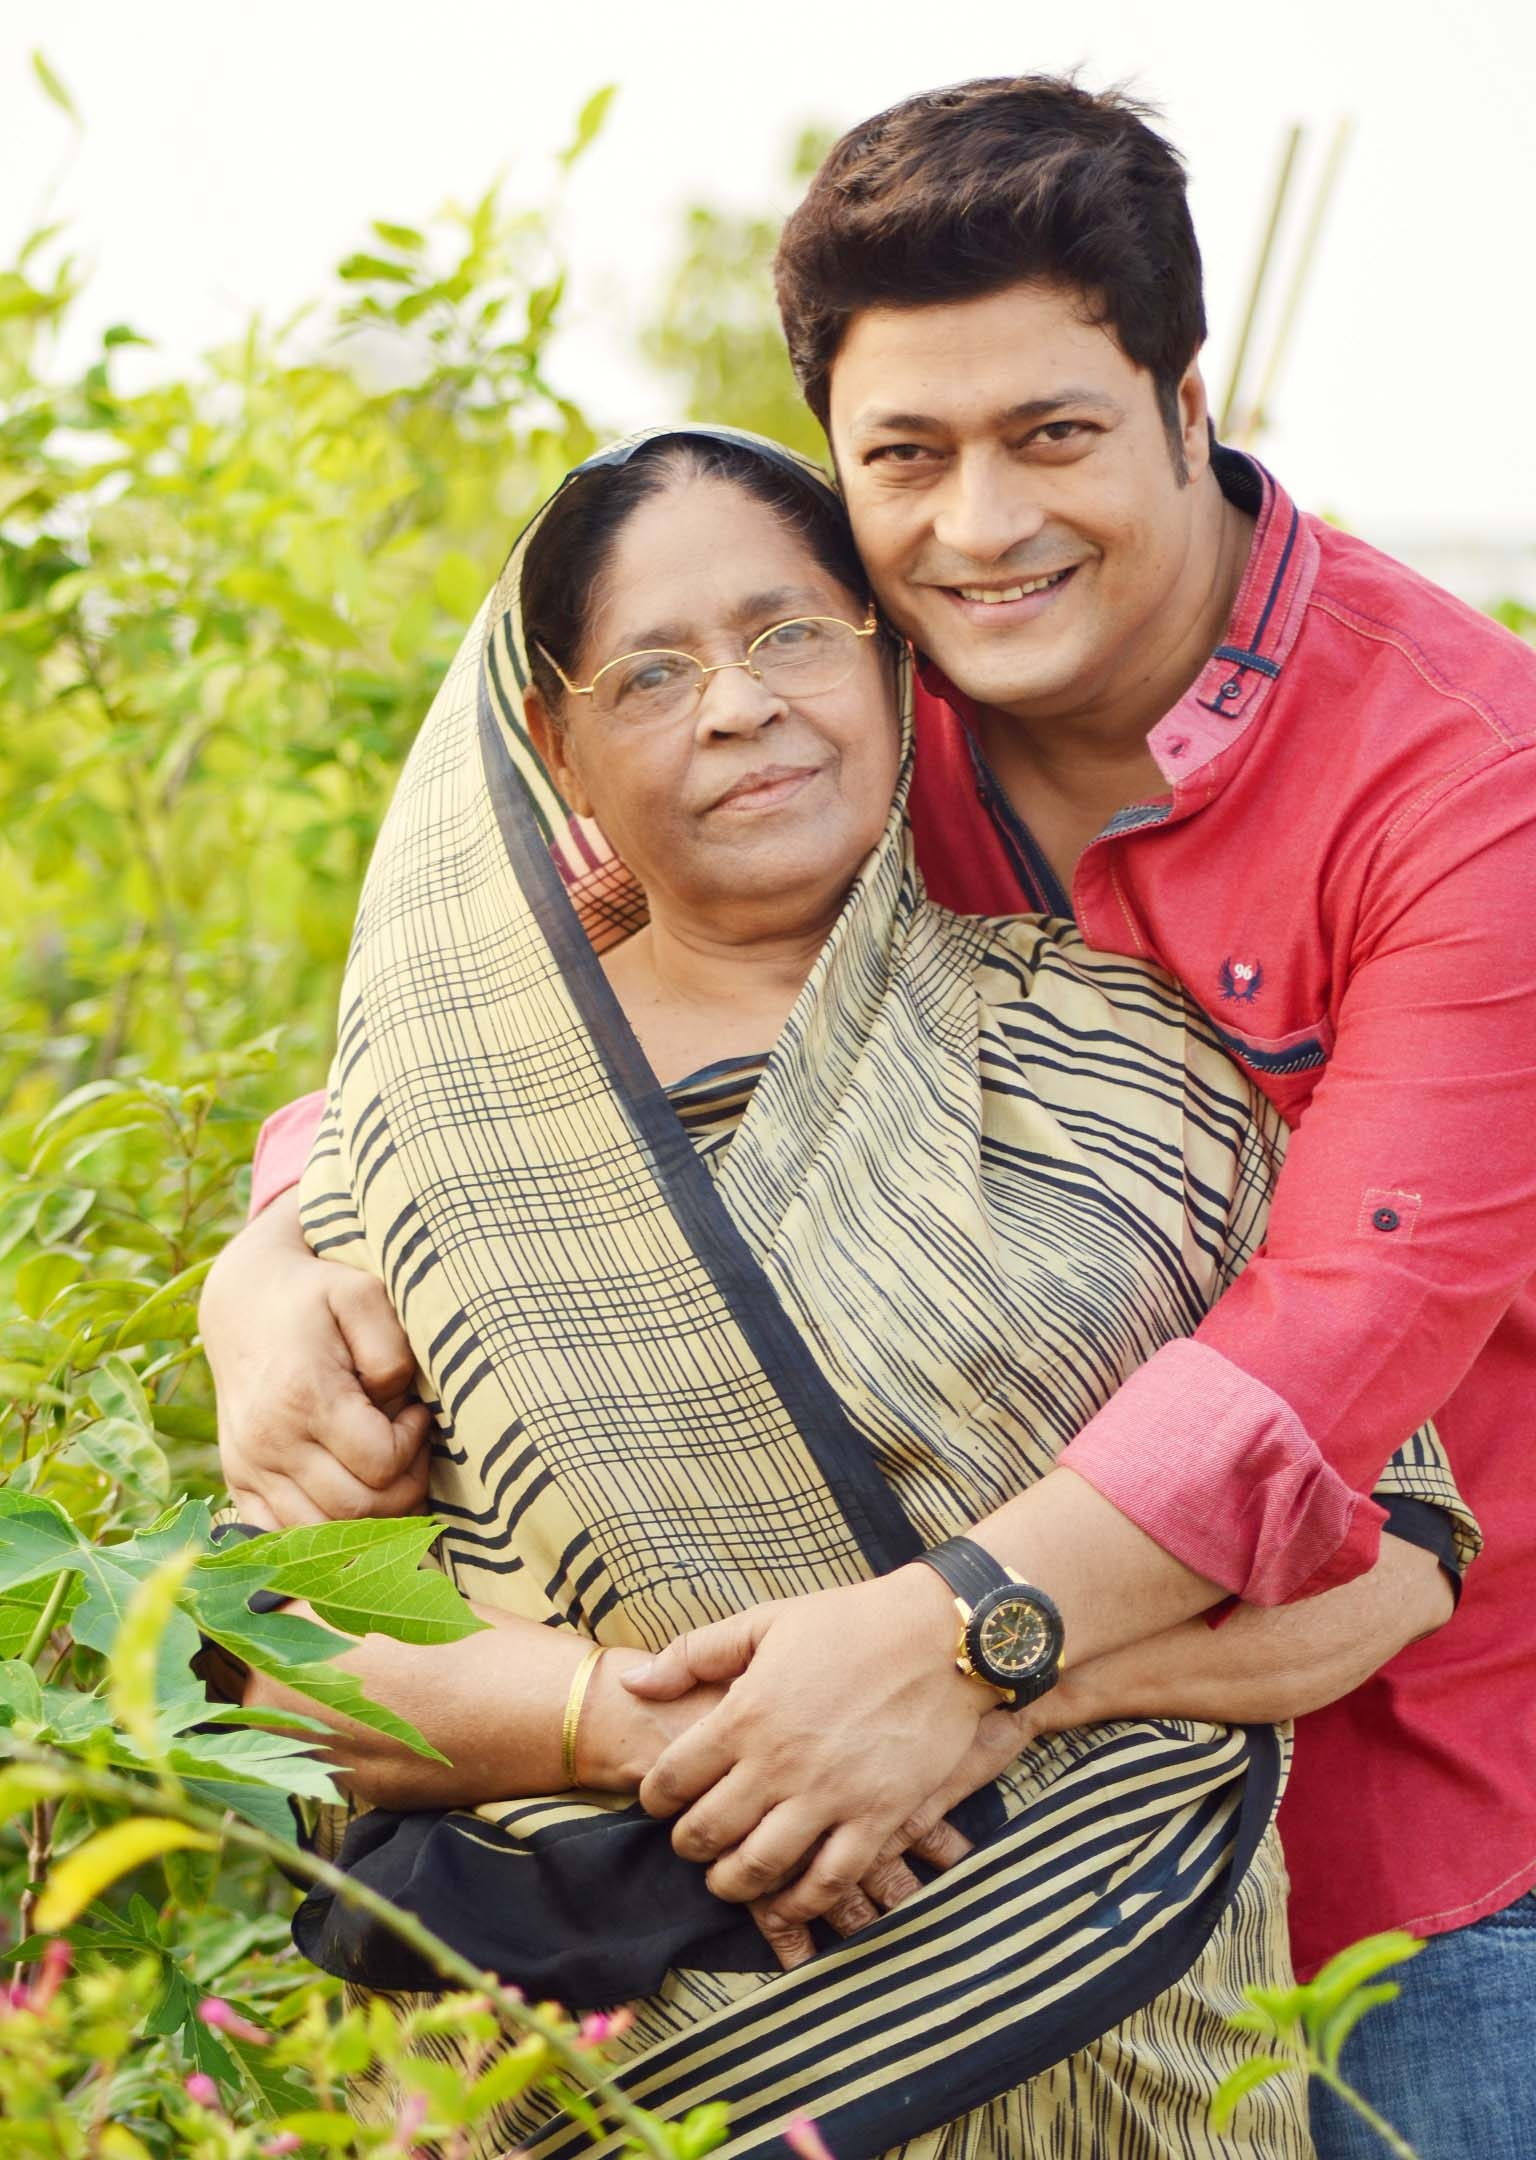 Ferdous' mom to get special honour on Mother's Day